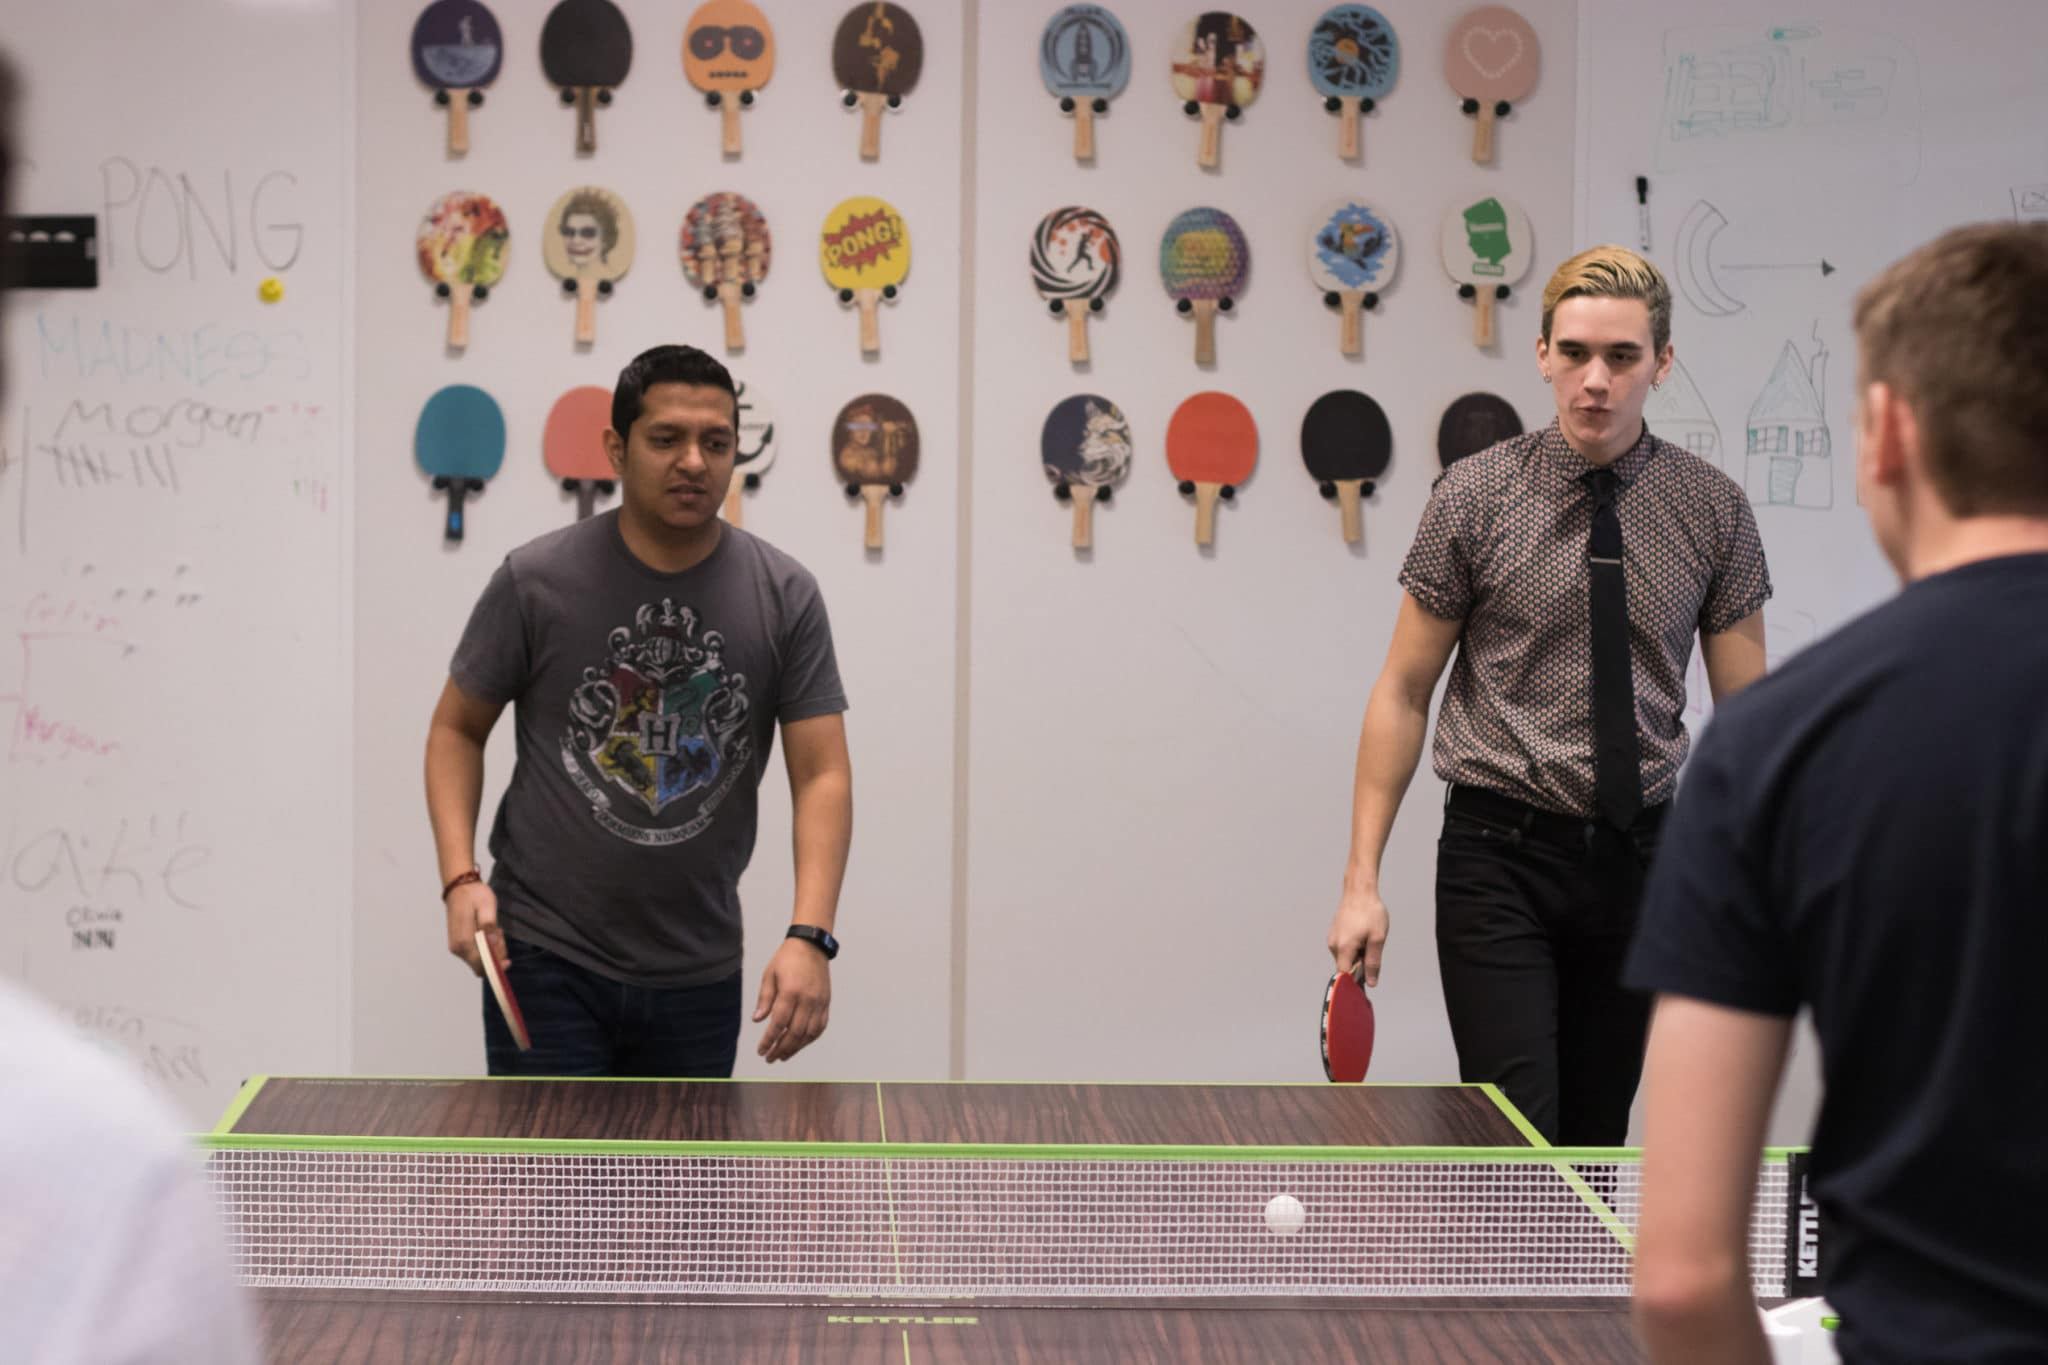 PI ping pong players